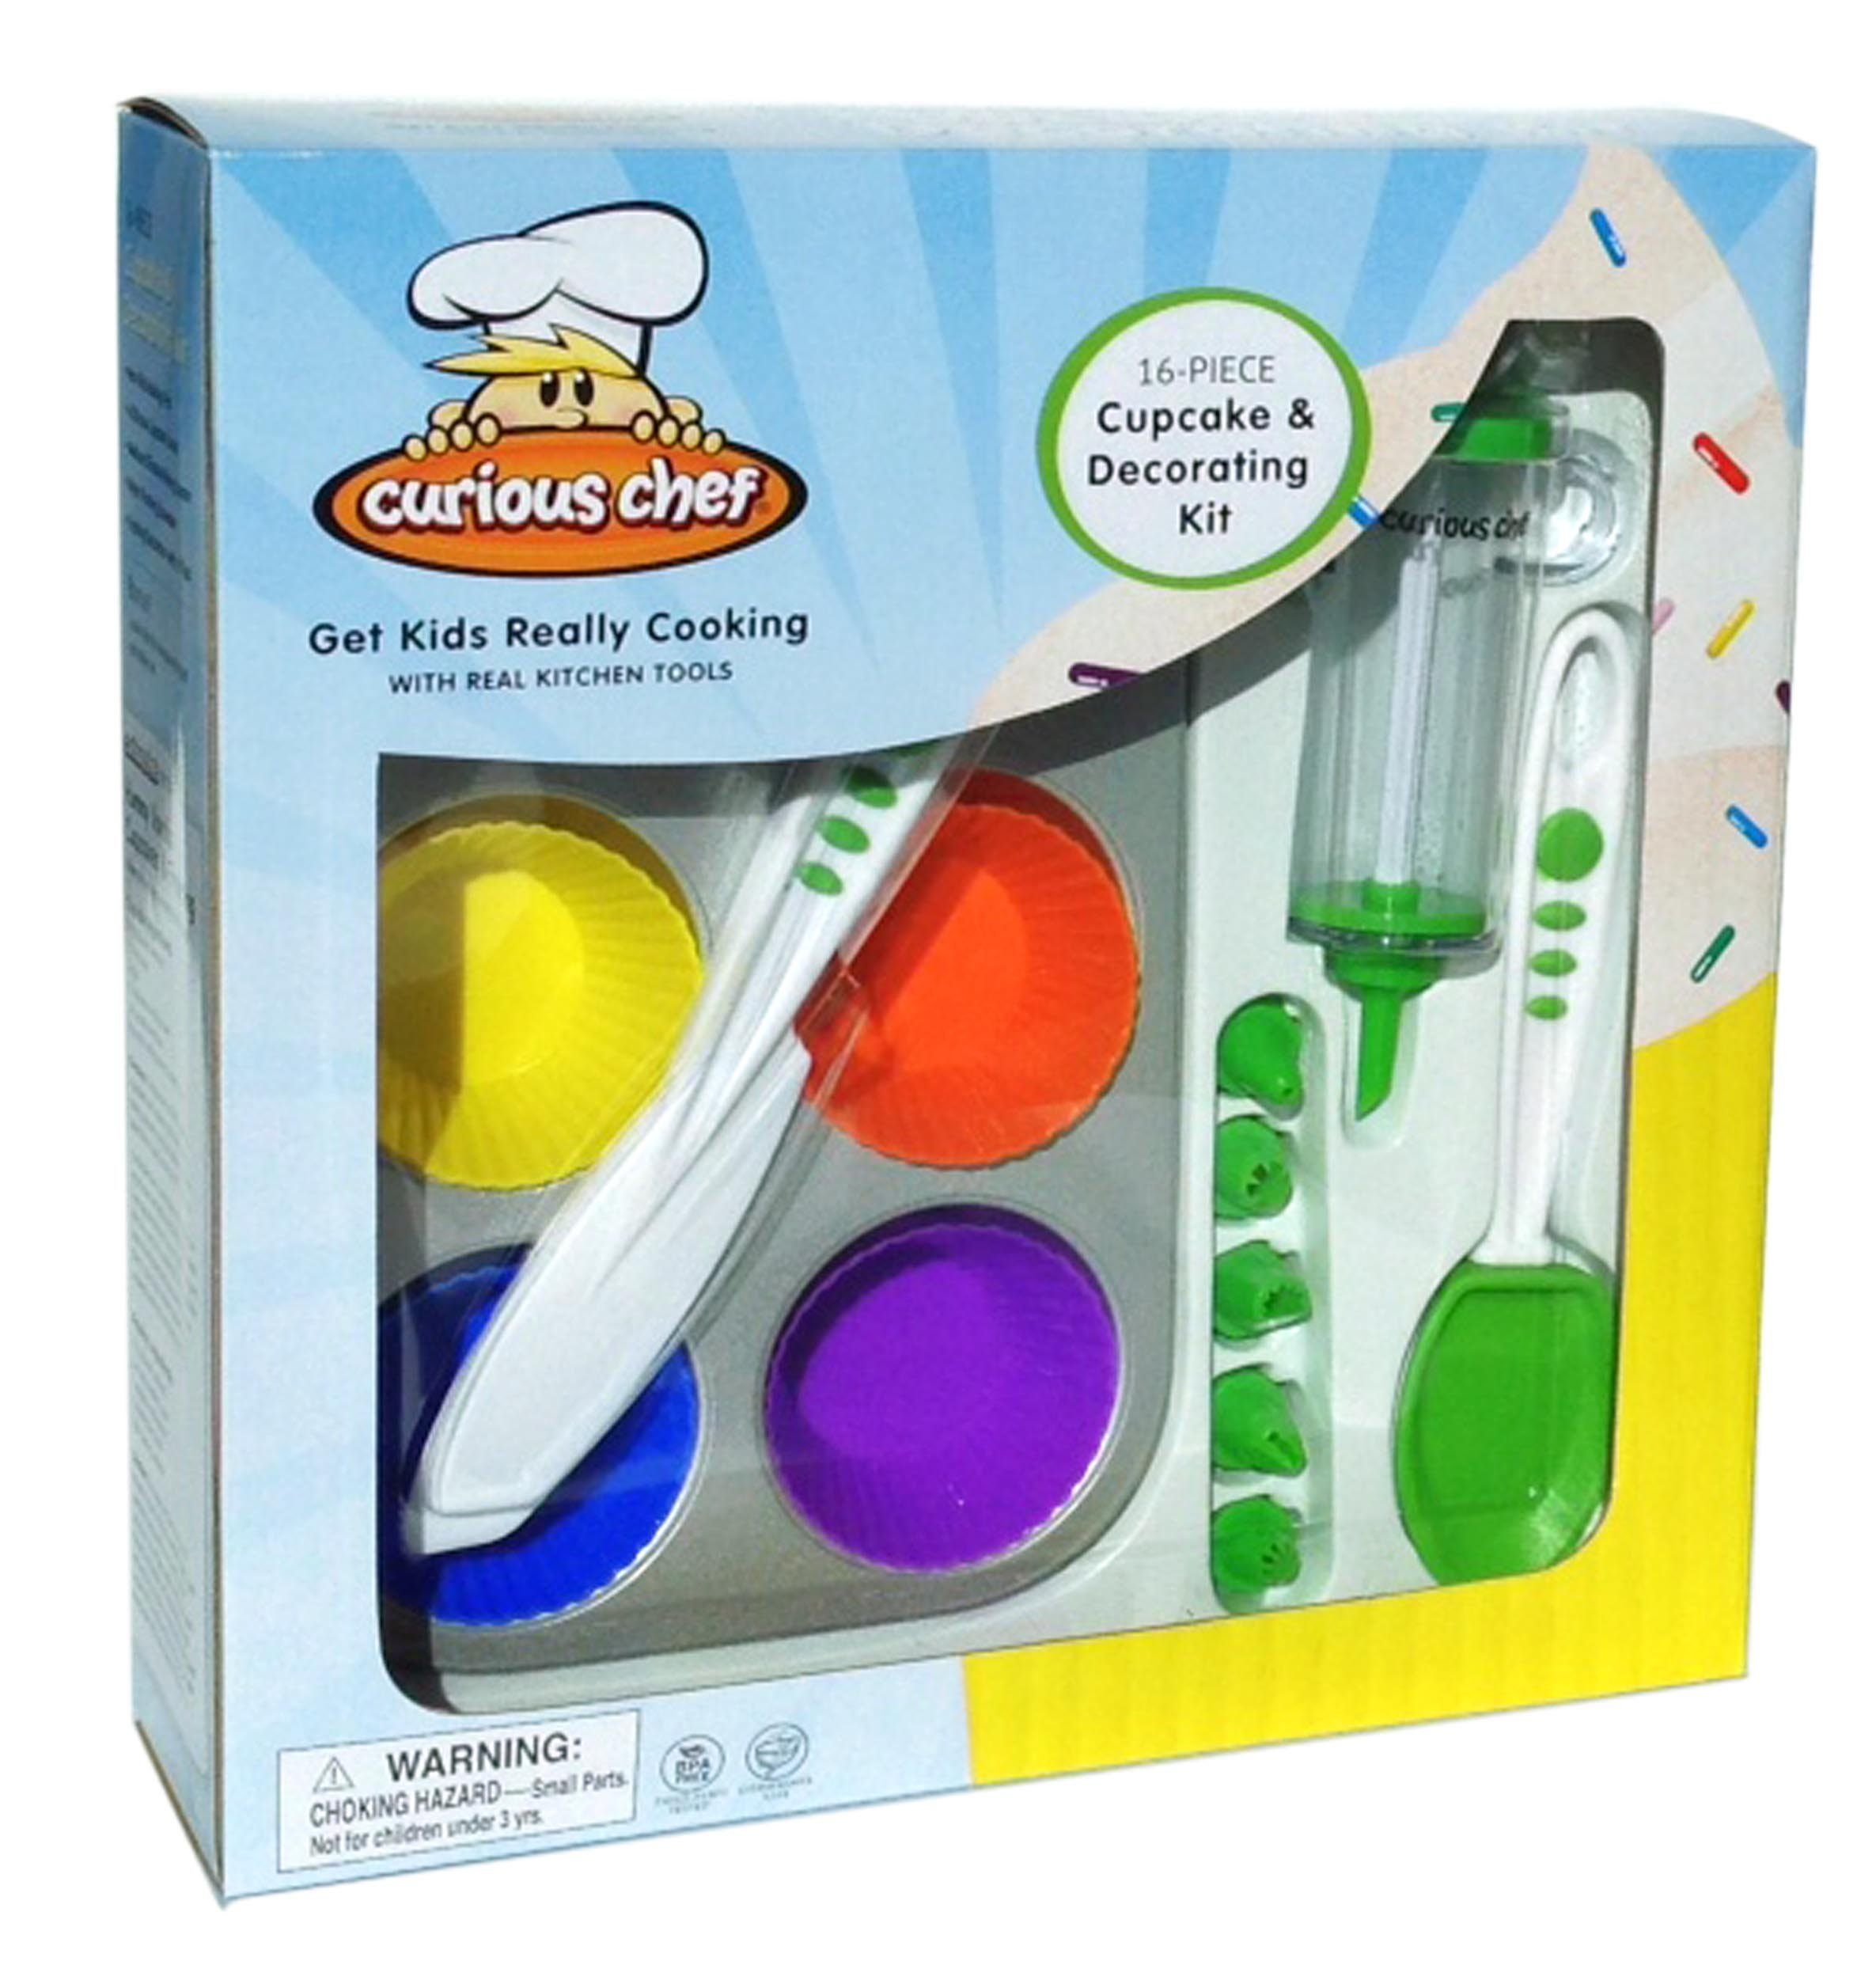 Curious Chef TCC50165 16-Piece Cupcake and Decorating Kit, Child, Multicolored by Curious Chef (Image #2)